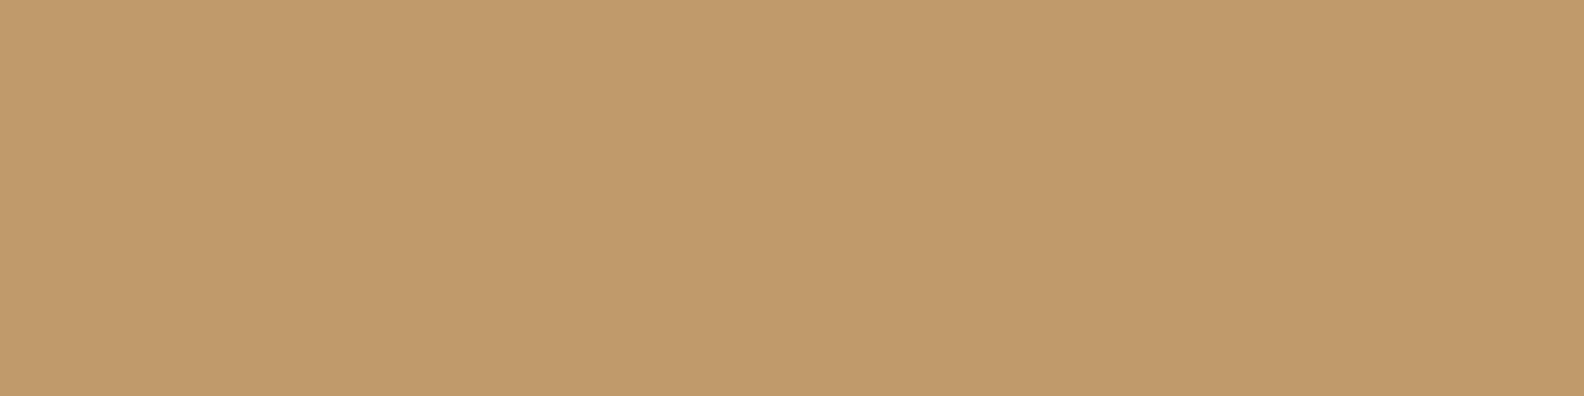 1584x396 Camel Solid Color Background